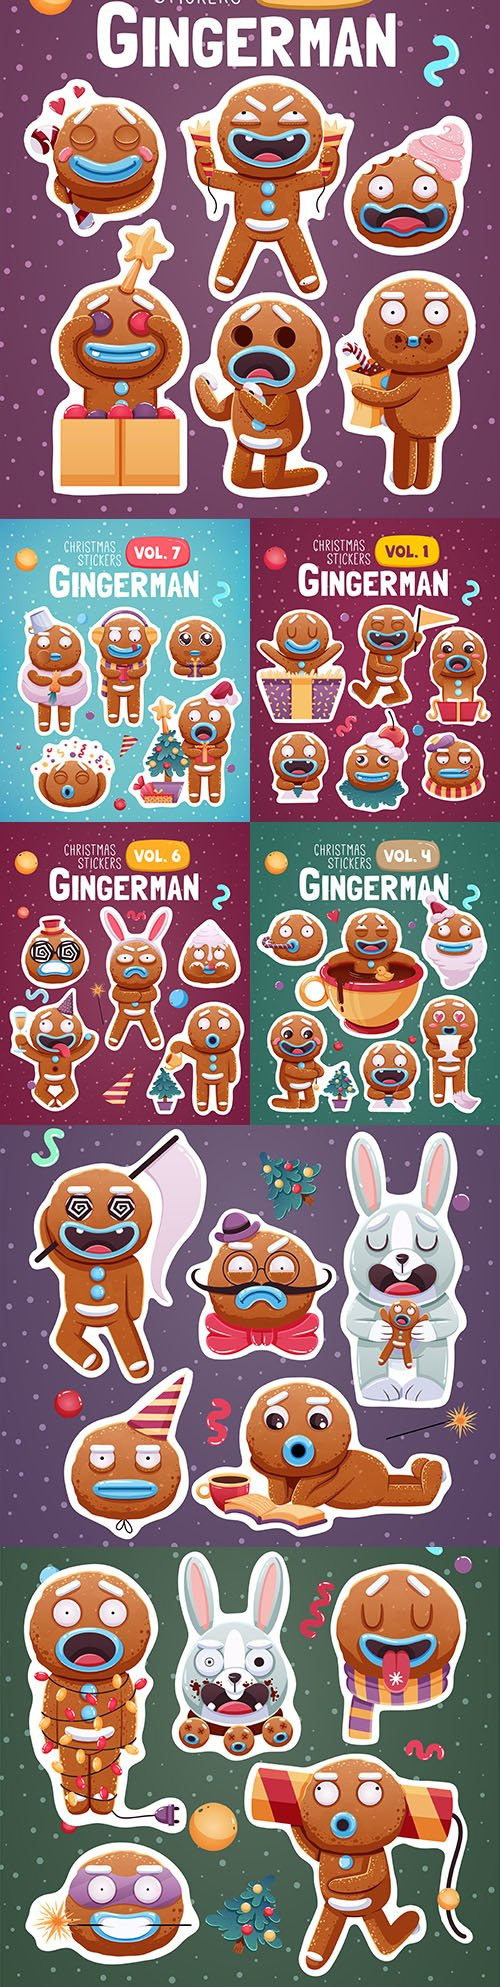 Merry Christmas set stickers or magnets festive souvenirs